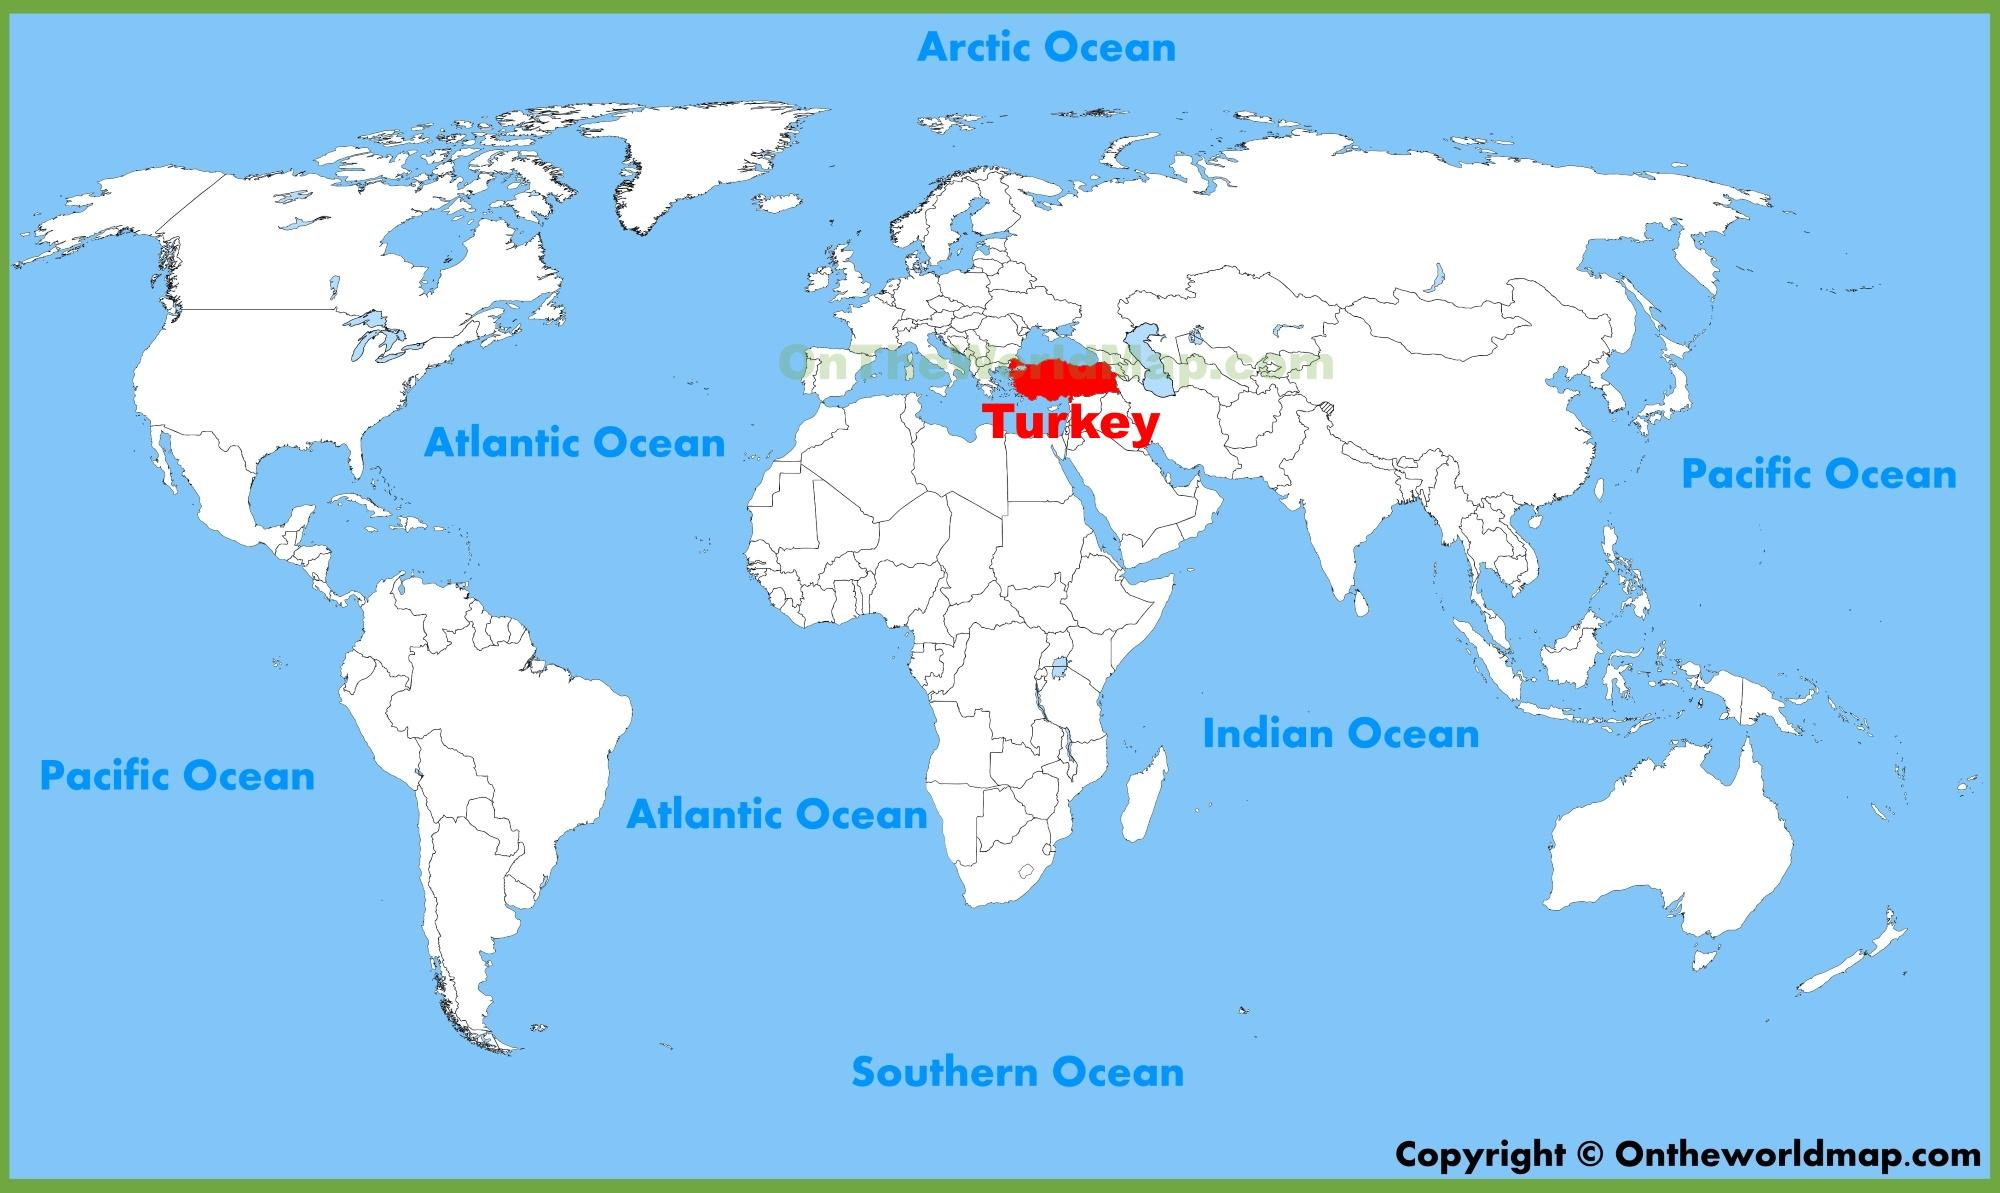 Turkey location on world map Turkey country in world map Western